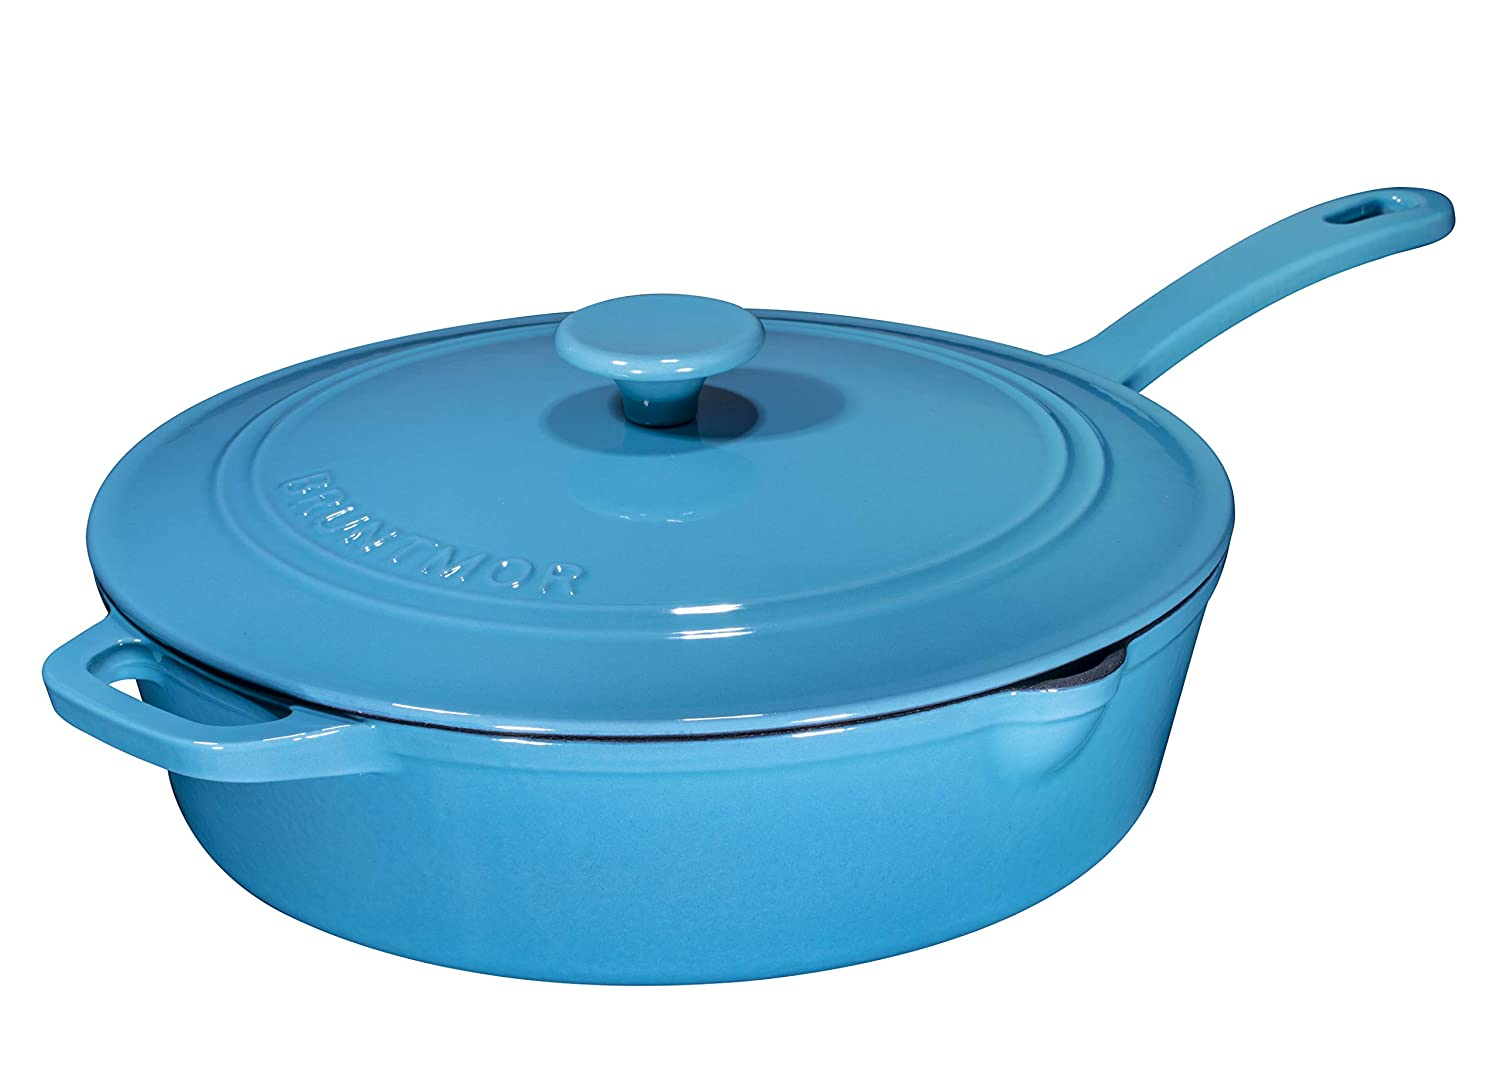 Enameled Cast Iron Skillet Deep Sauté Pan with Lid, 12 Inch, Turquoise Blue, Superior Heat Retention